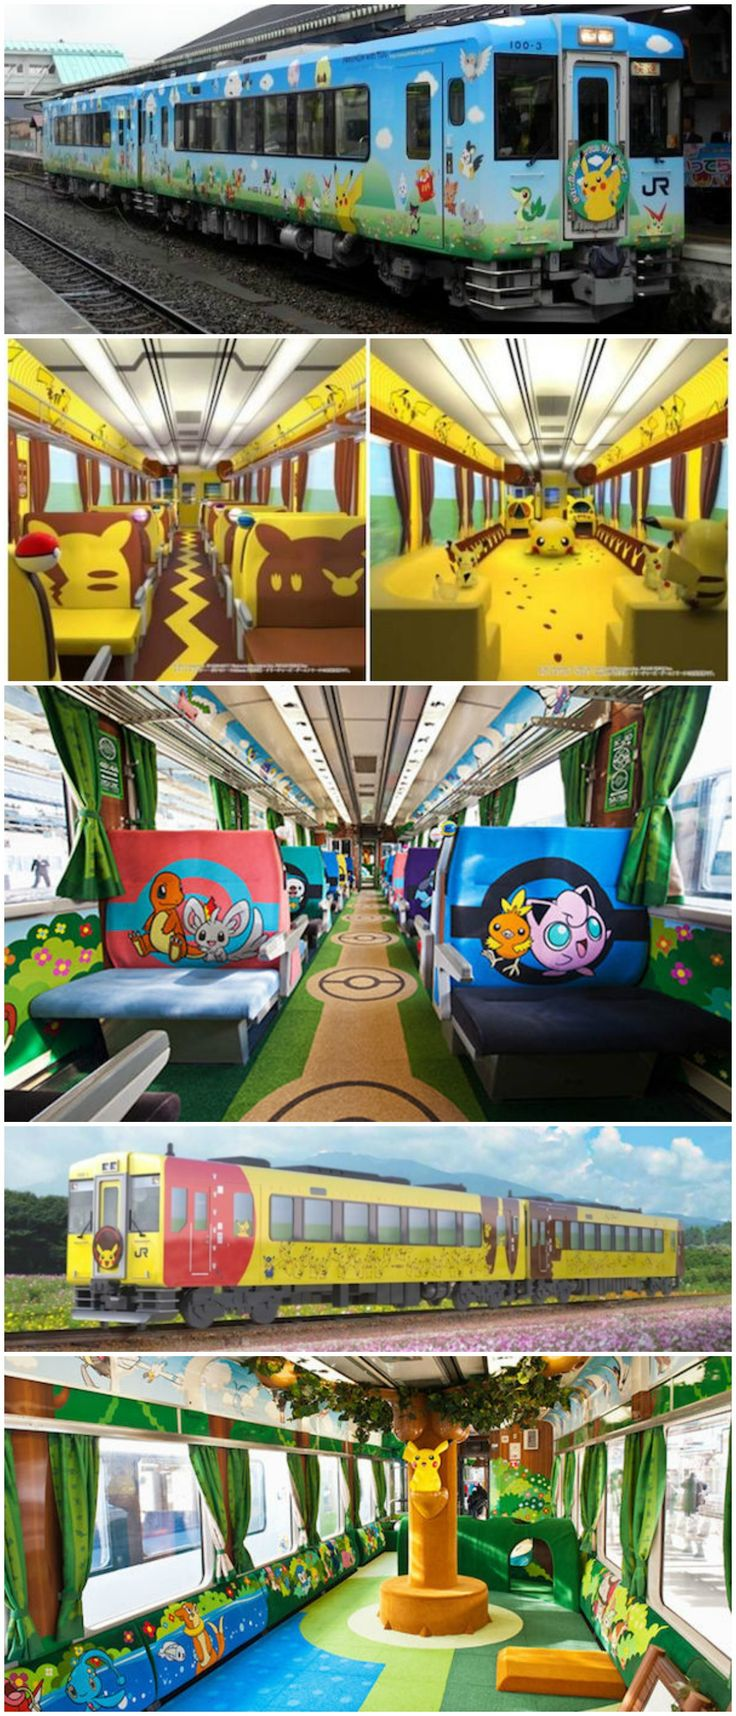 All Aboard Japan's #Pikachu Train